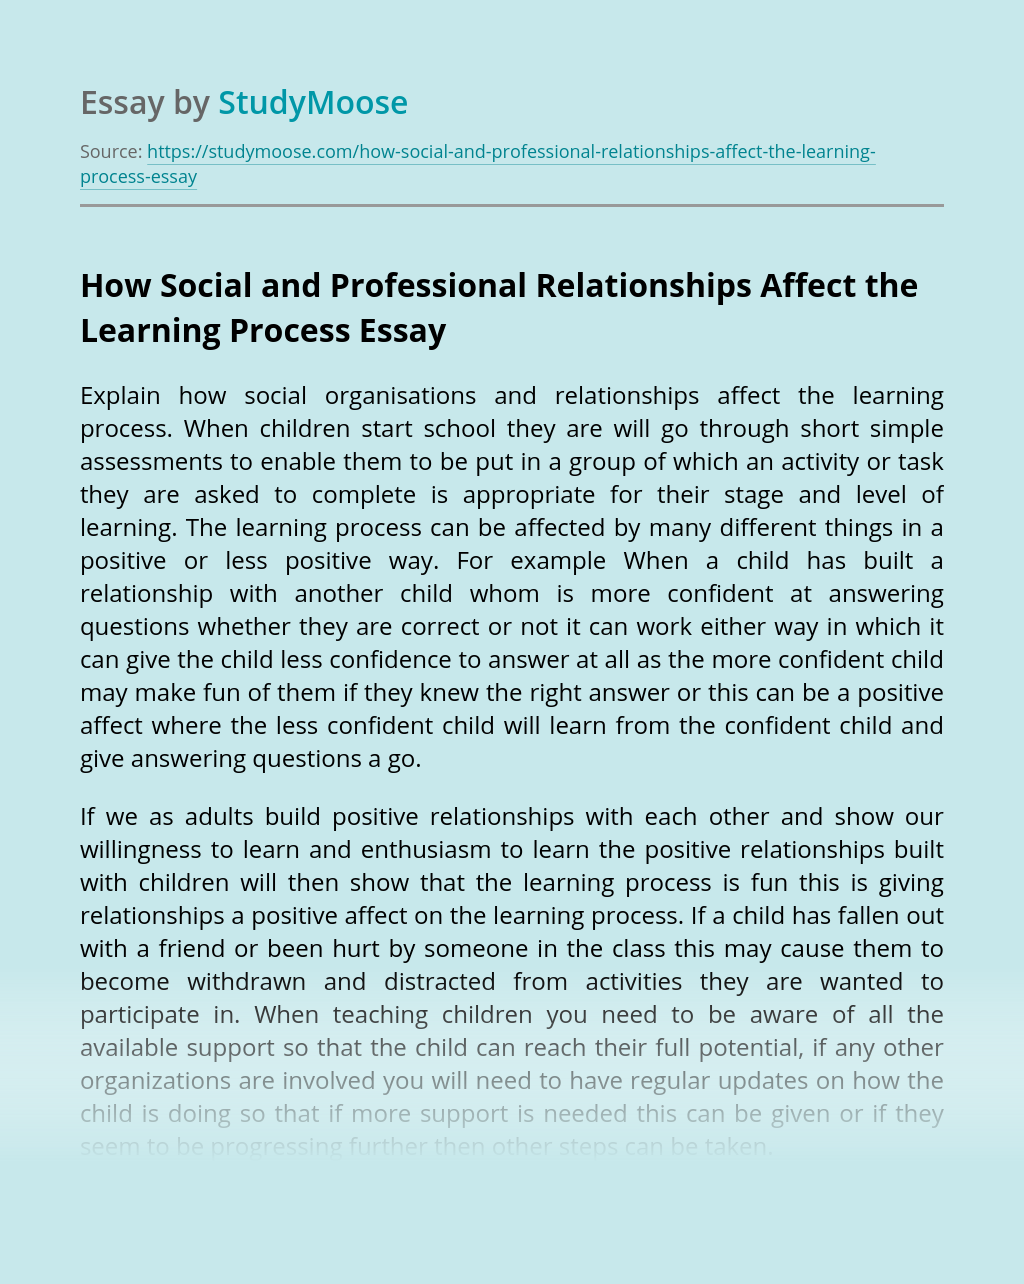 How Social and Professional Relationships Affect the Learning Process